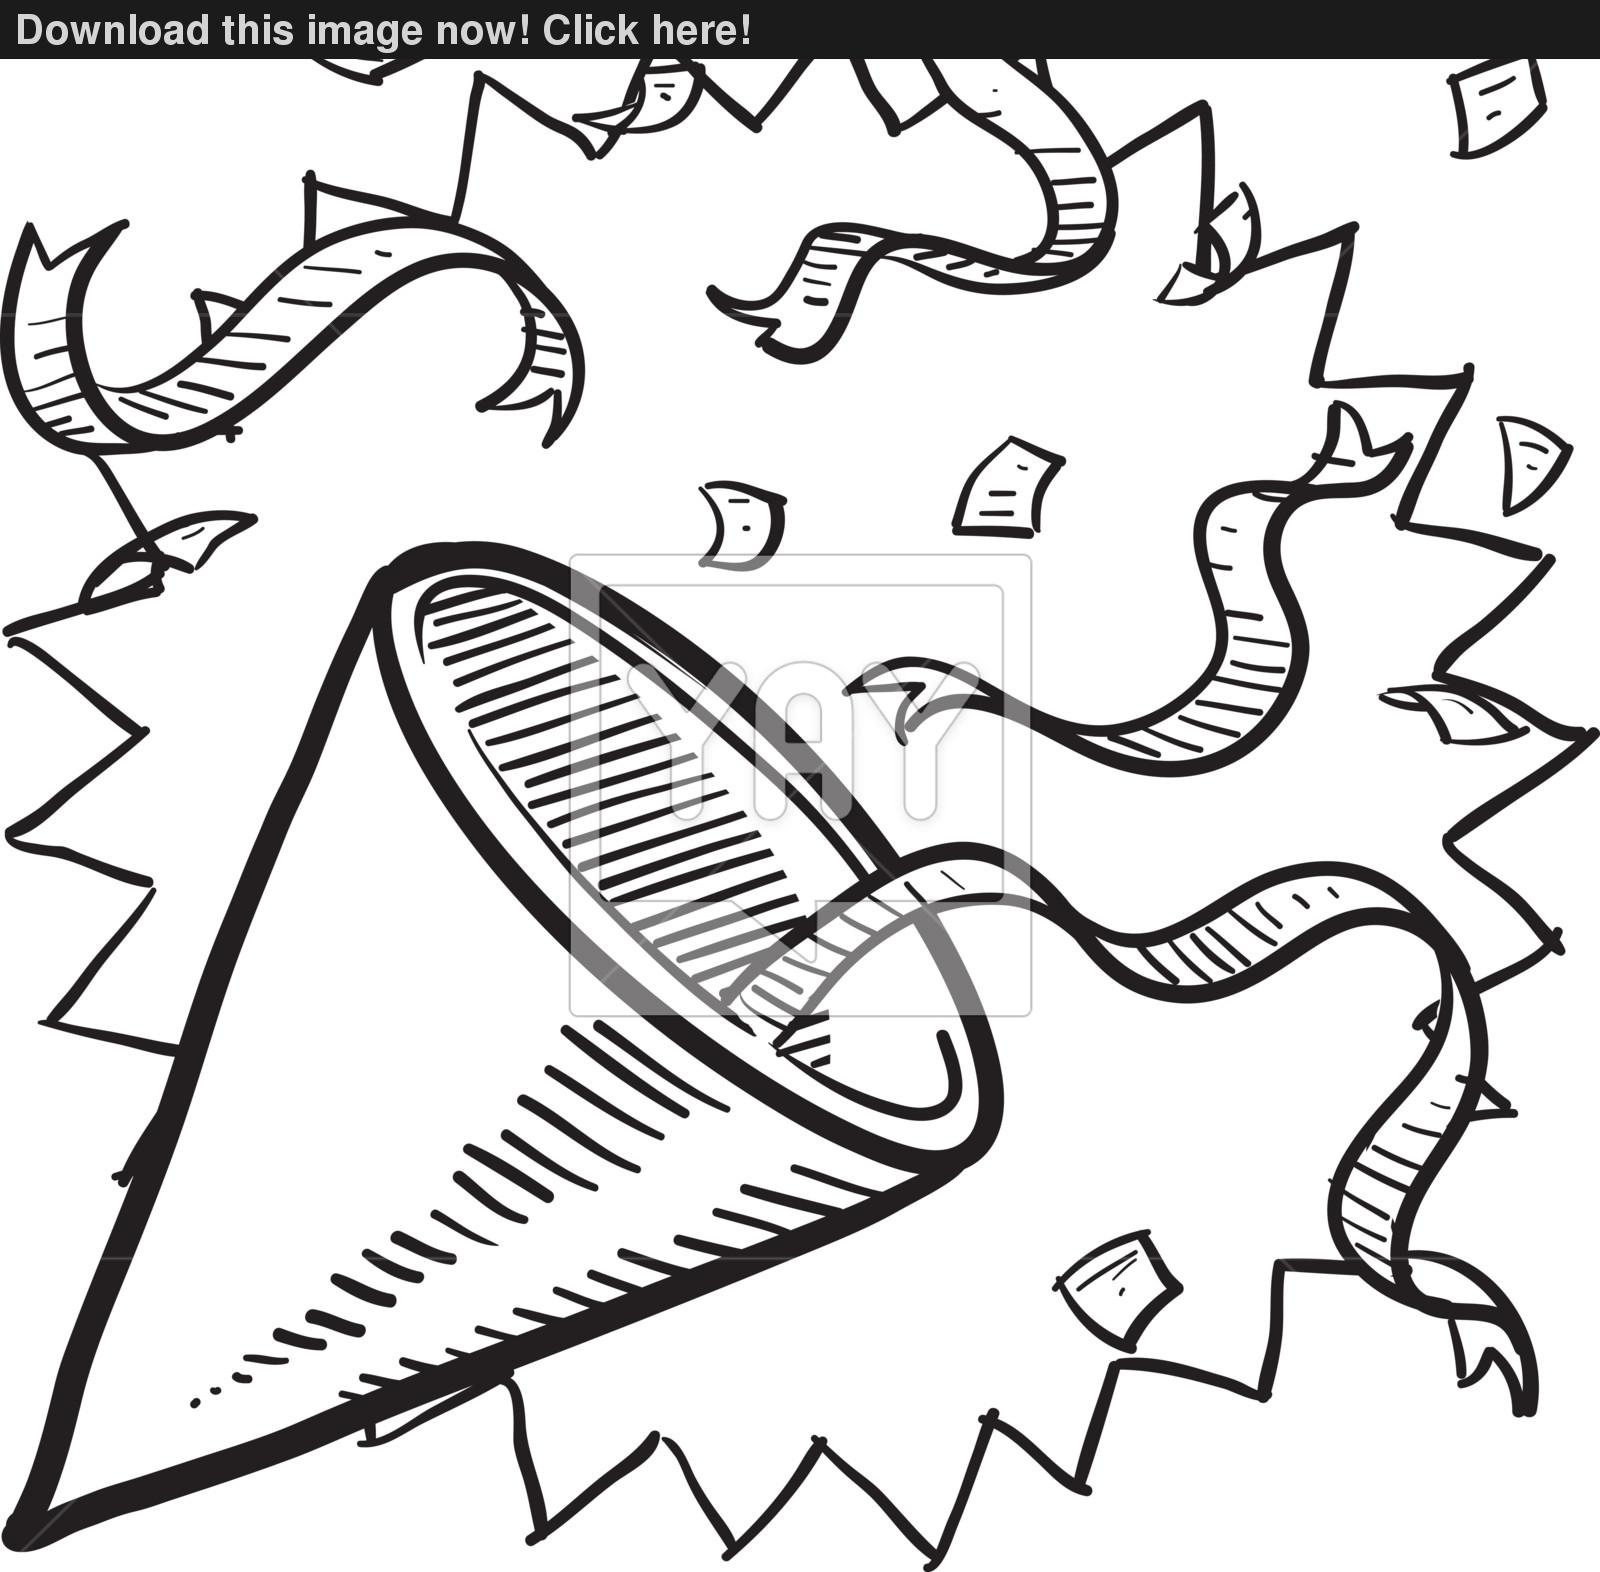 Party Hat Clipart Black And White Party Hat Drawing At Getdrawings Free For Personal Use Party